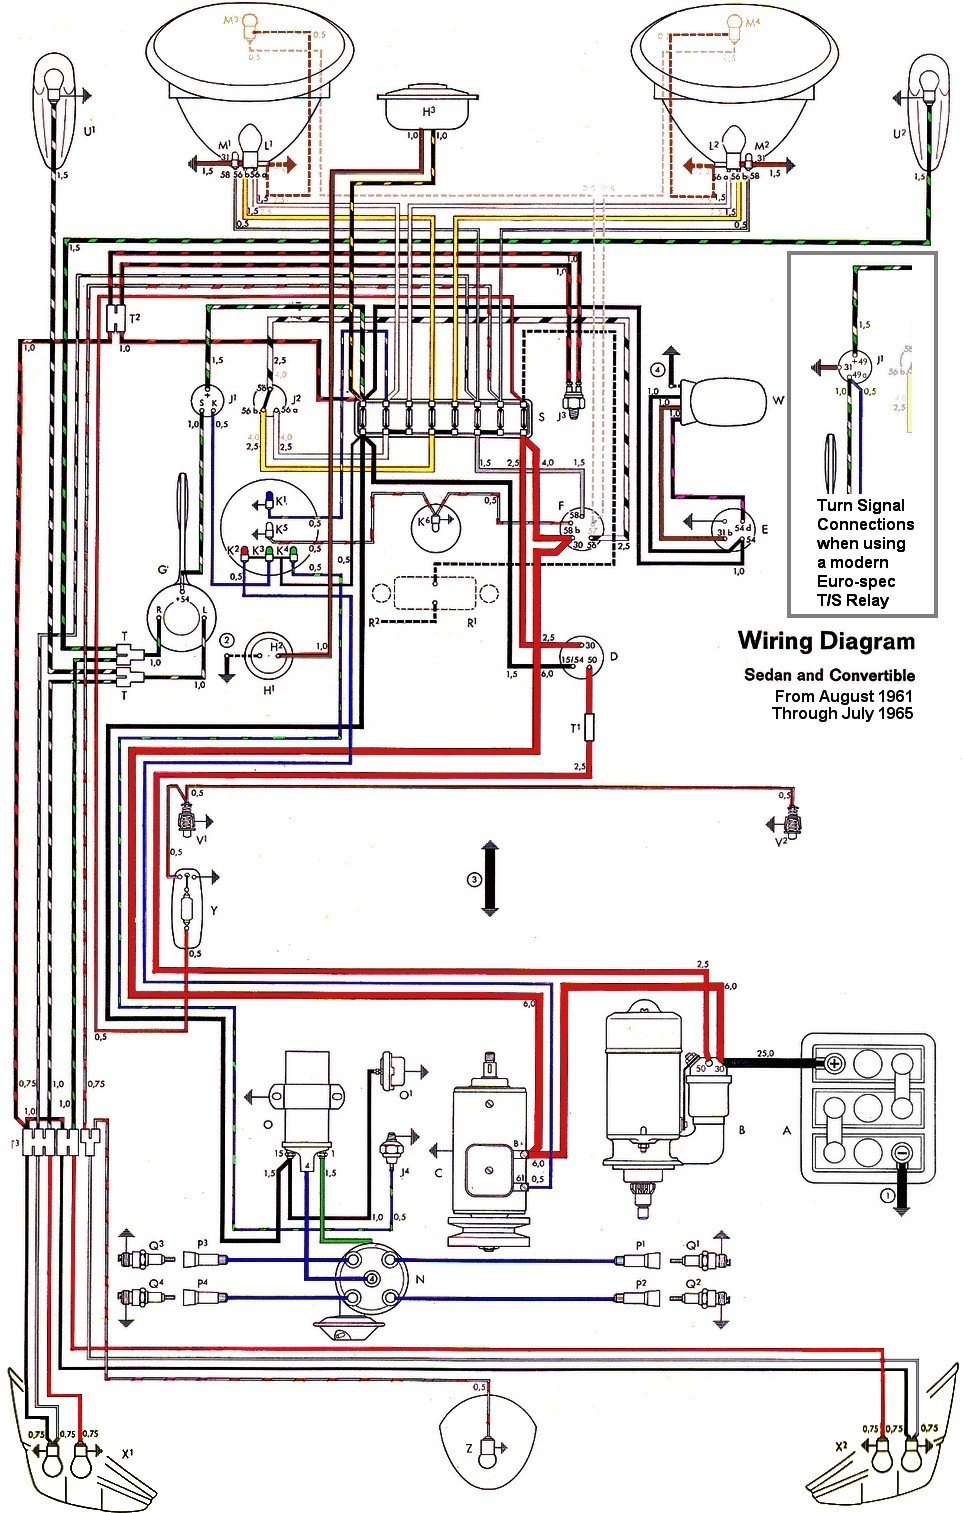 bug_62 65withinset thesamba com type 1 wiring diagrams 1970 vw beetle wiring schematic at n-0.co